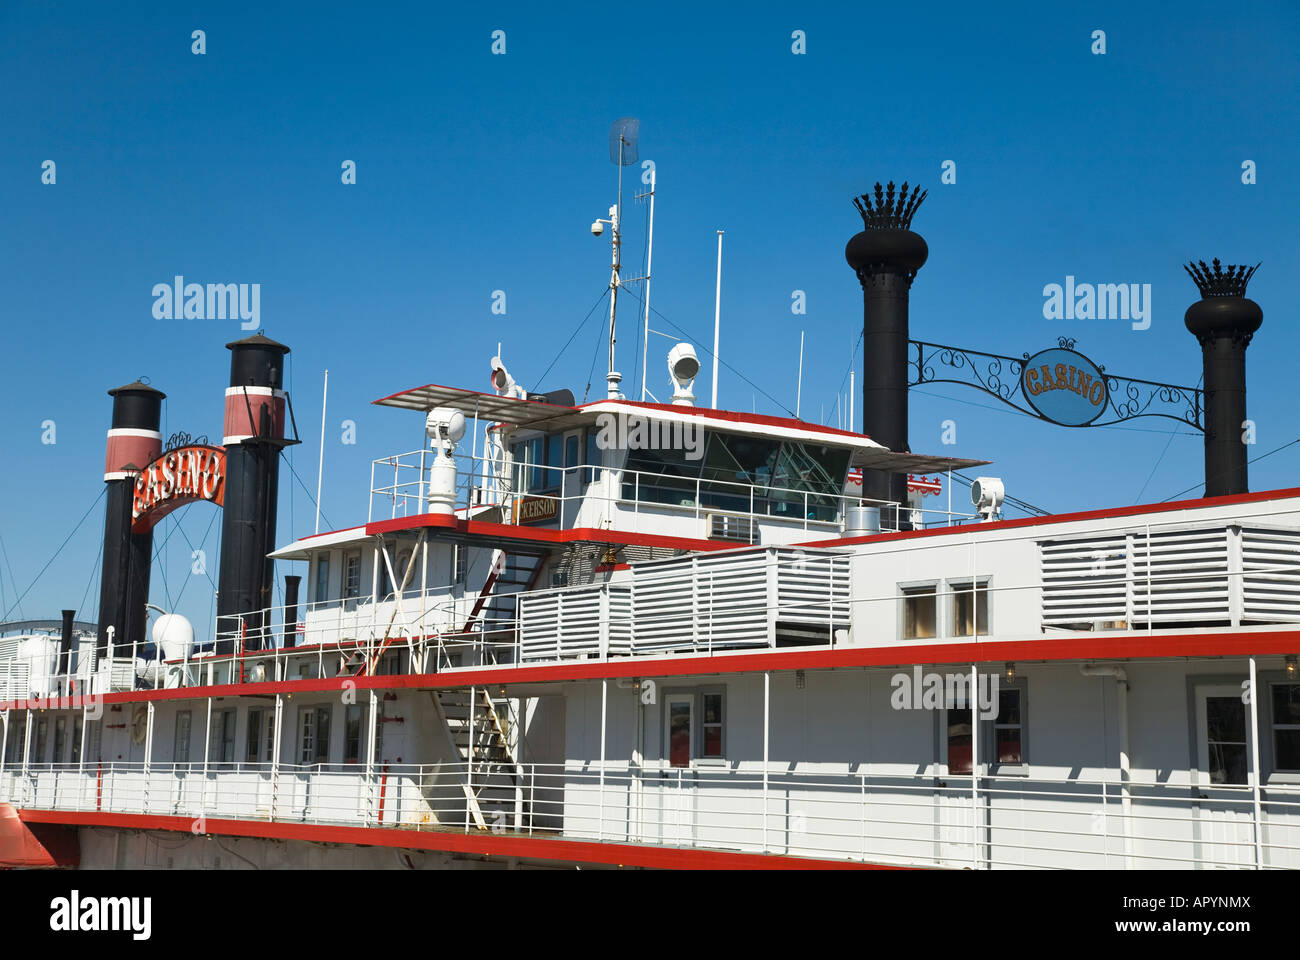 Gambling Boat Stock Photos Gambling Boat Stock Images Alamy